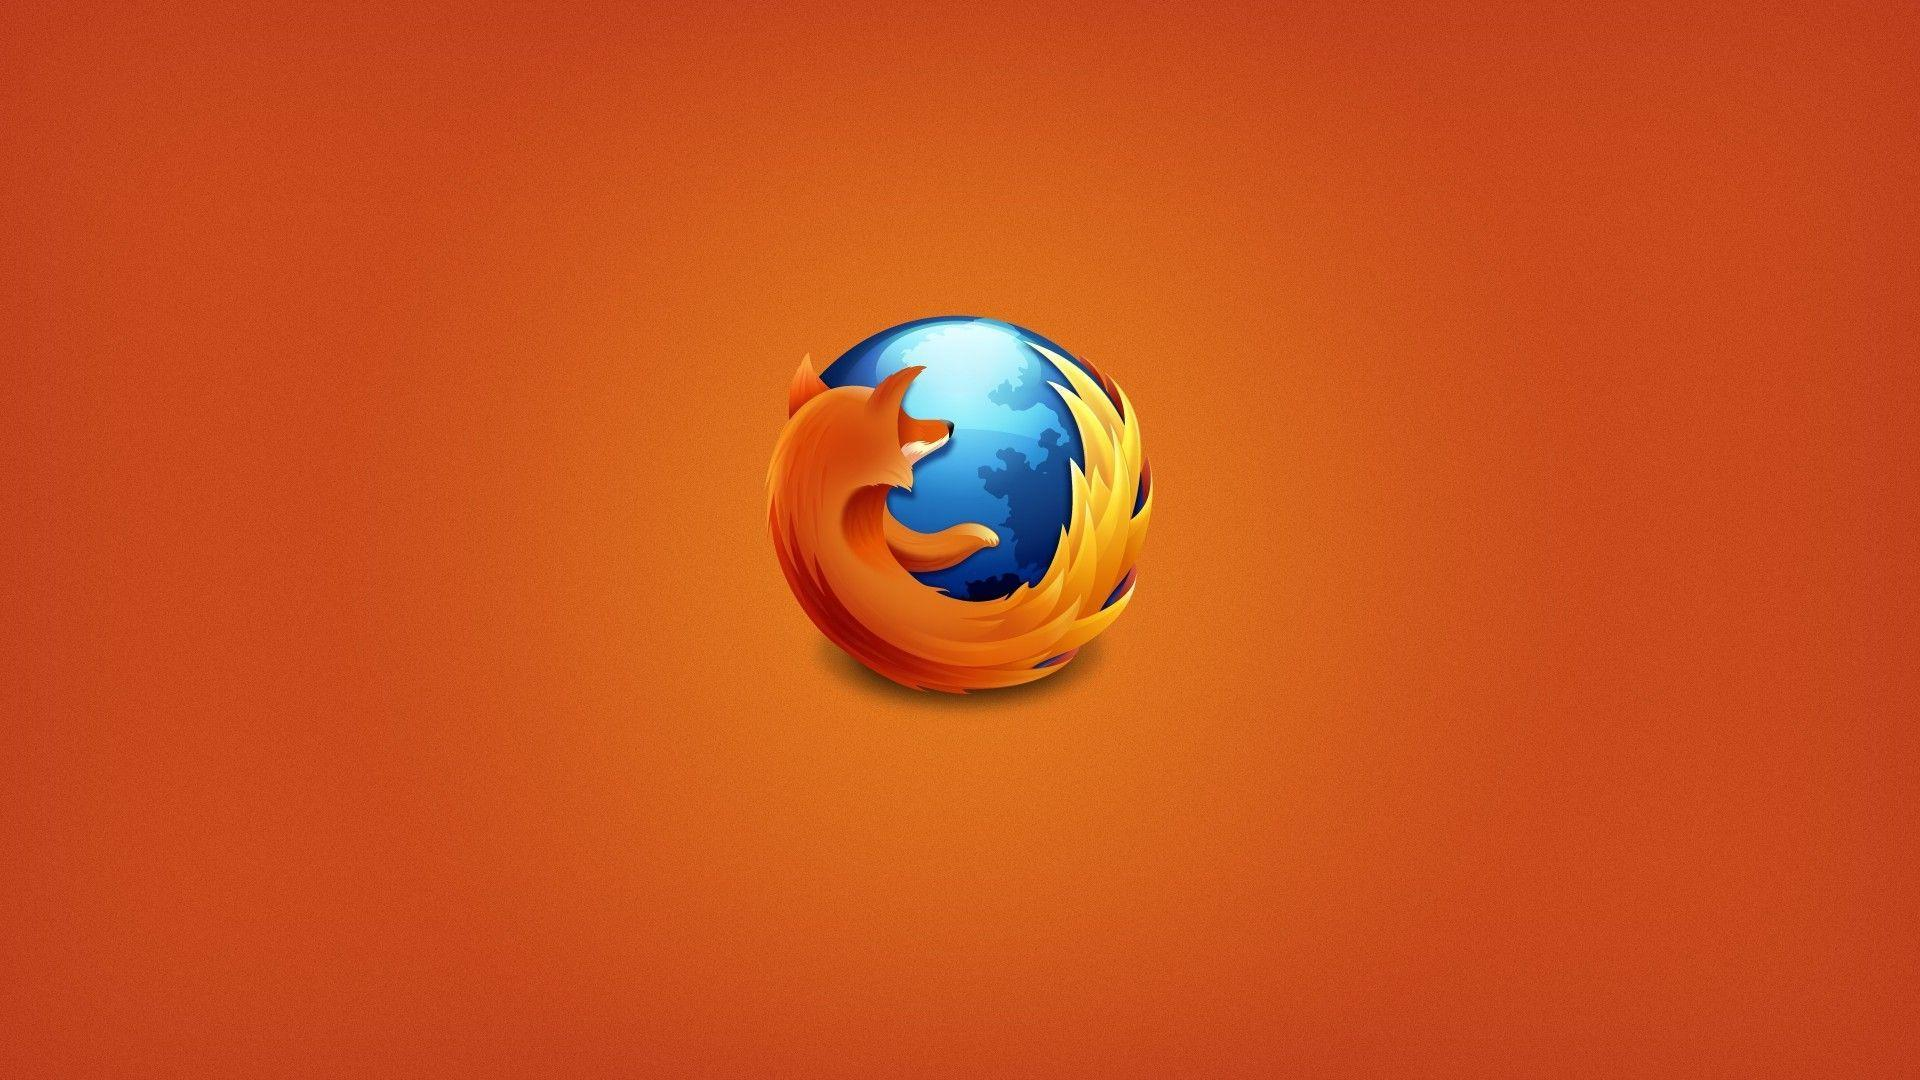 Mozilla Firefox Backgrounds 1920x1080